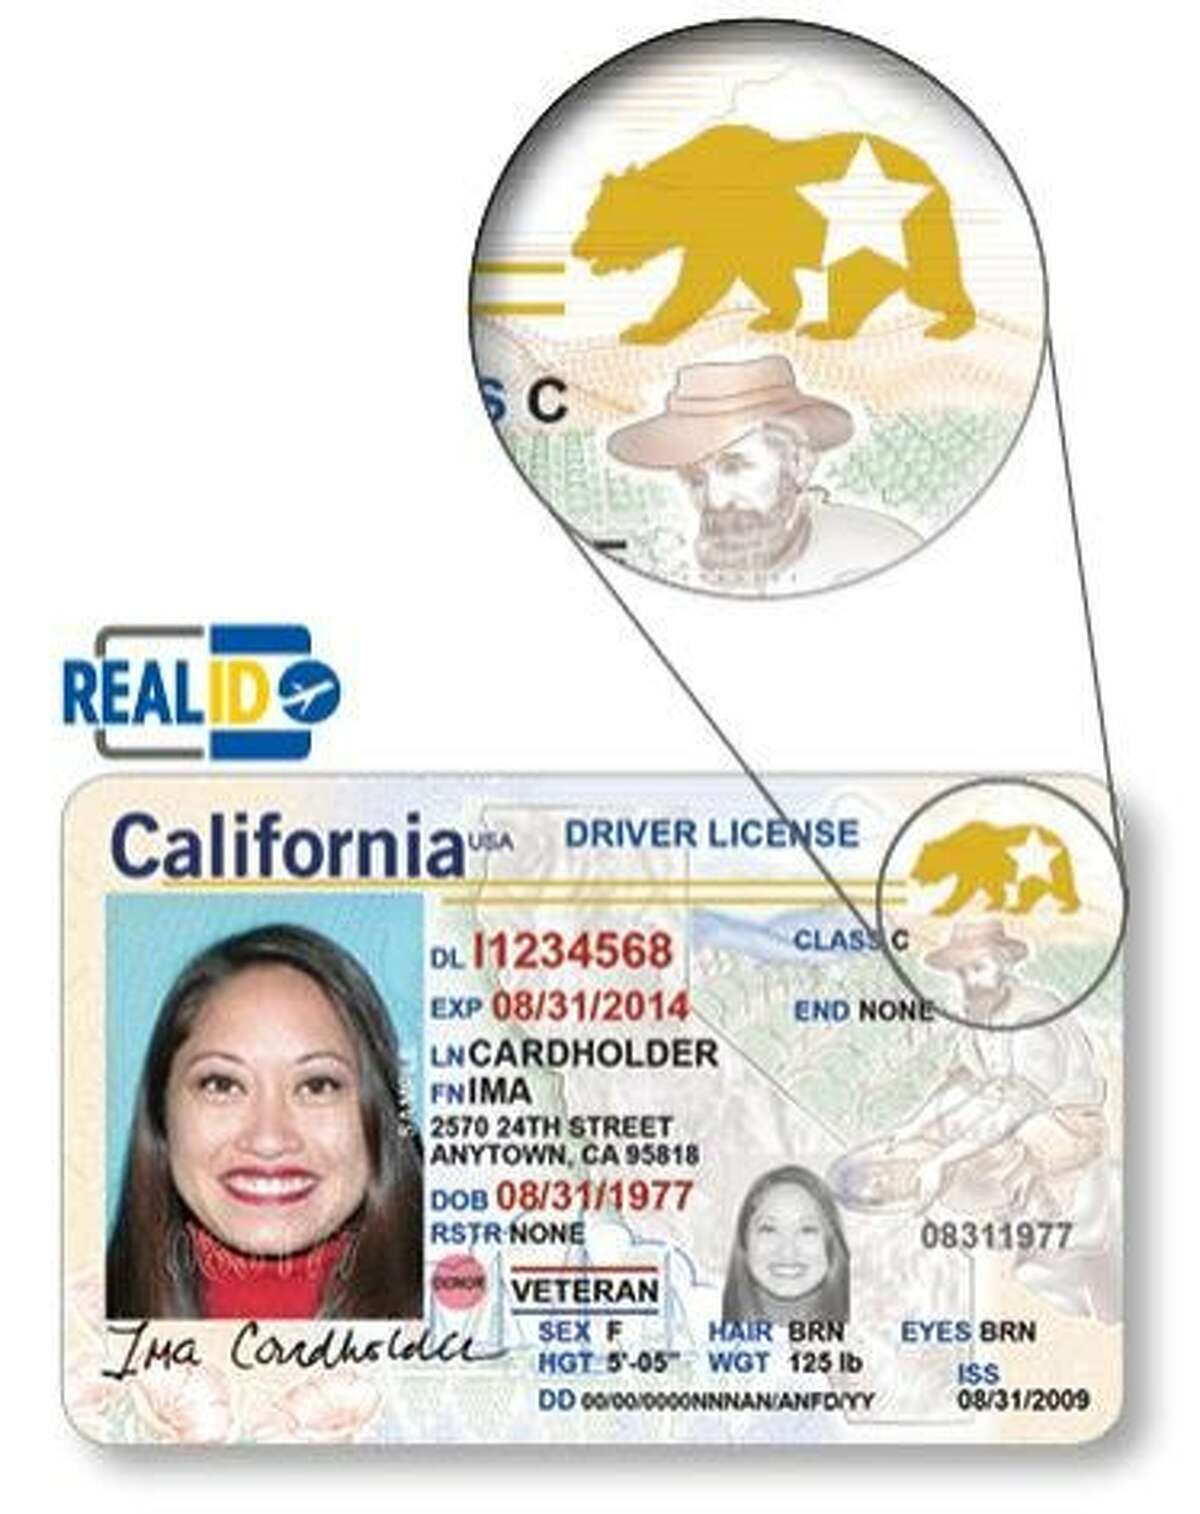 Sample California driver license that meets federal requirements to be a